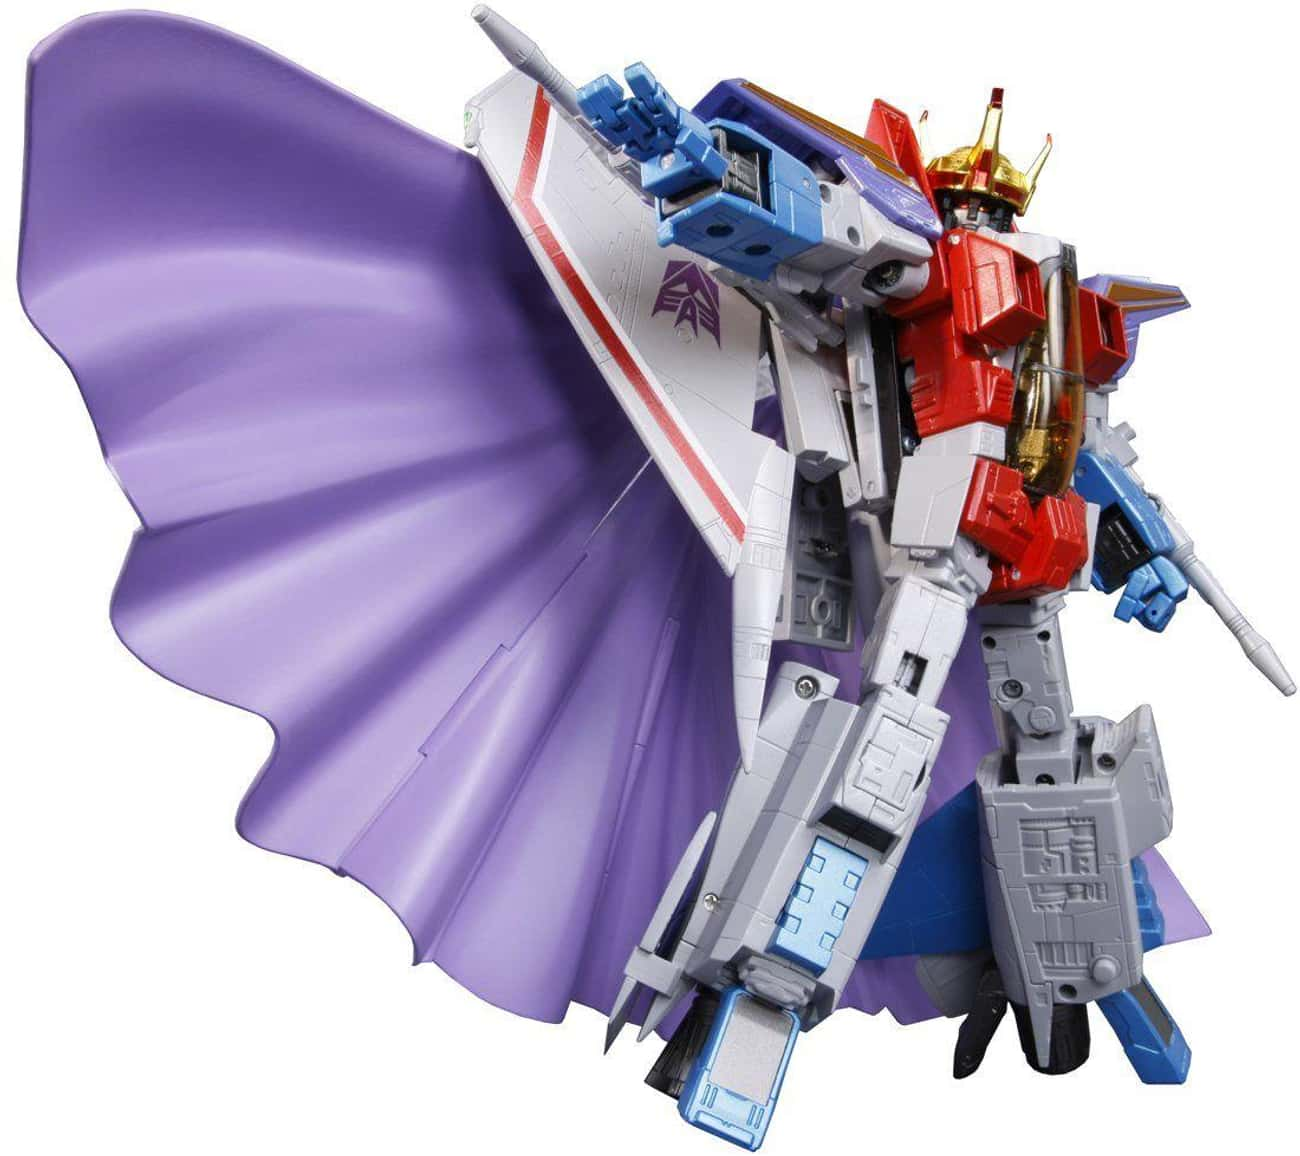 Masterpiece Starscream is listed (or ranked) 3 on the list The Best Starscream Toys, Ranked